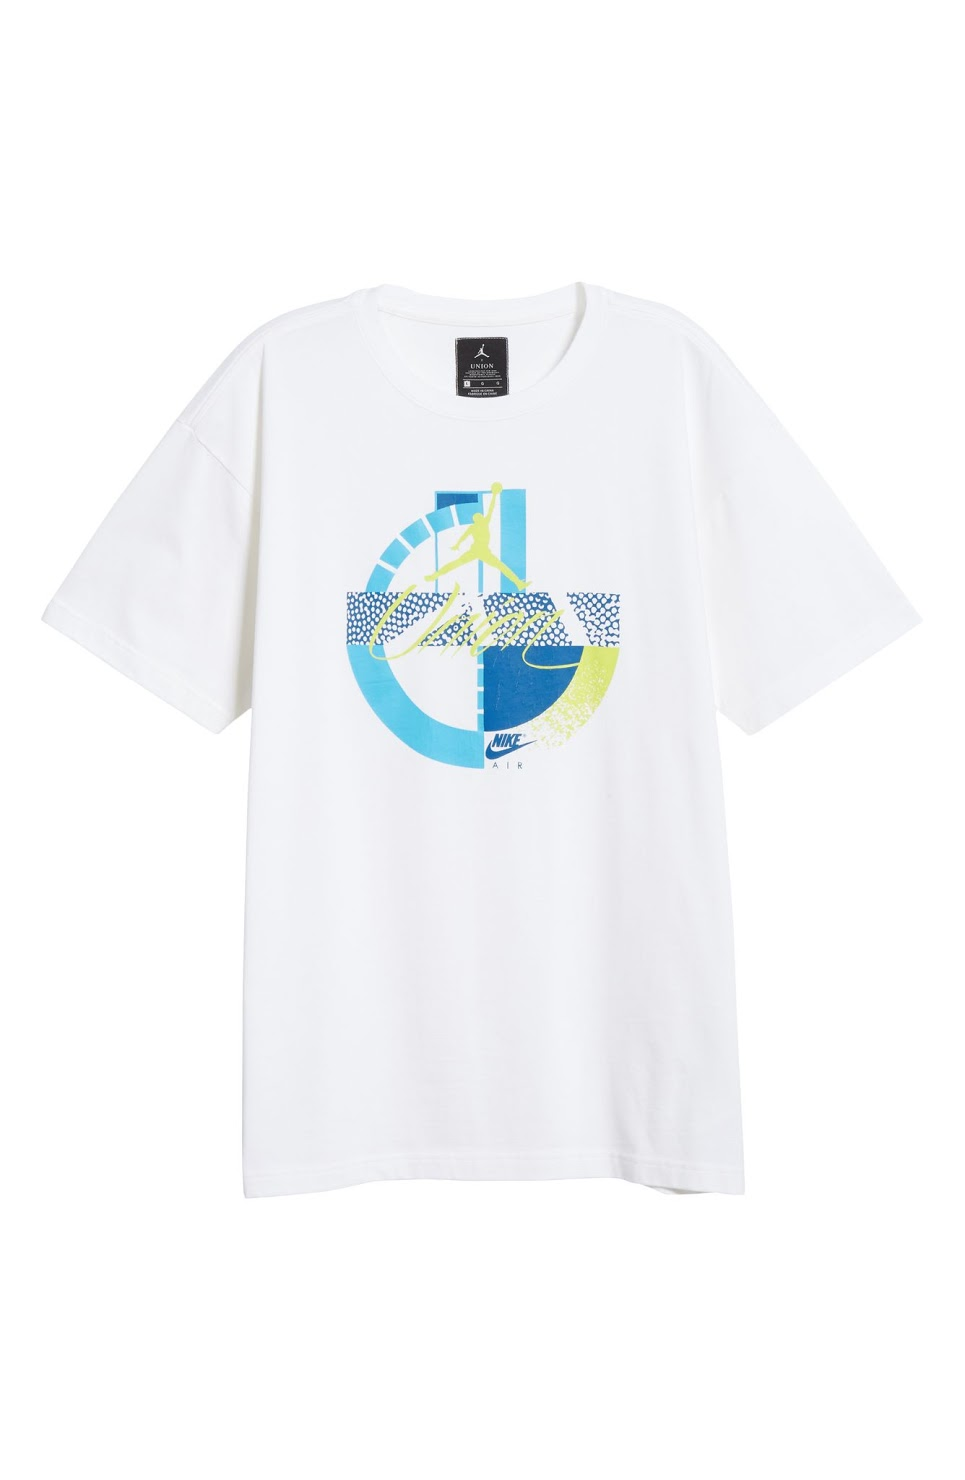 Jordan_Short Sleeve T-Shirt in White_$50 (2).jpeg